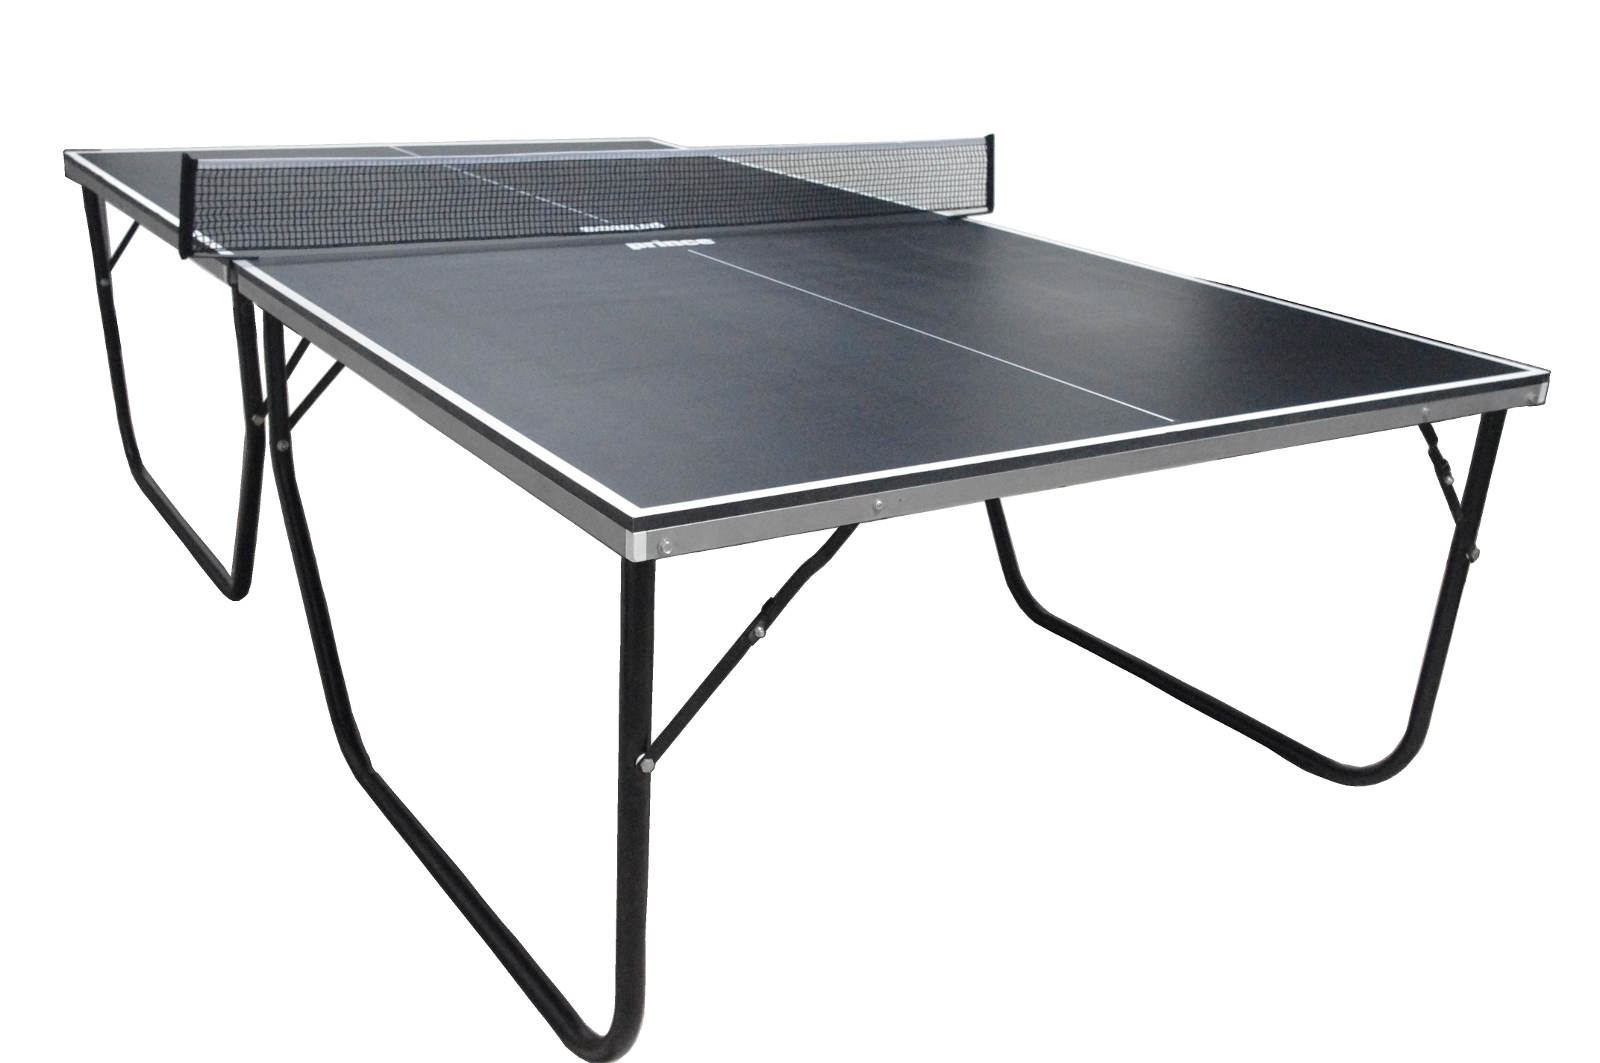 Prince Folding Traveler Table Tennis Table